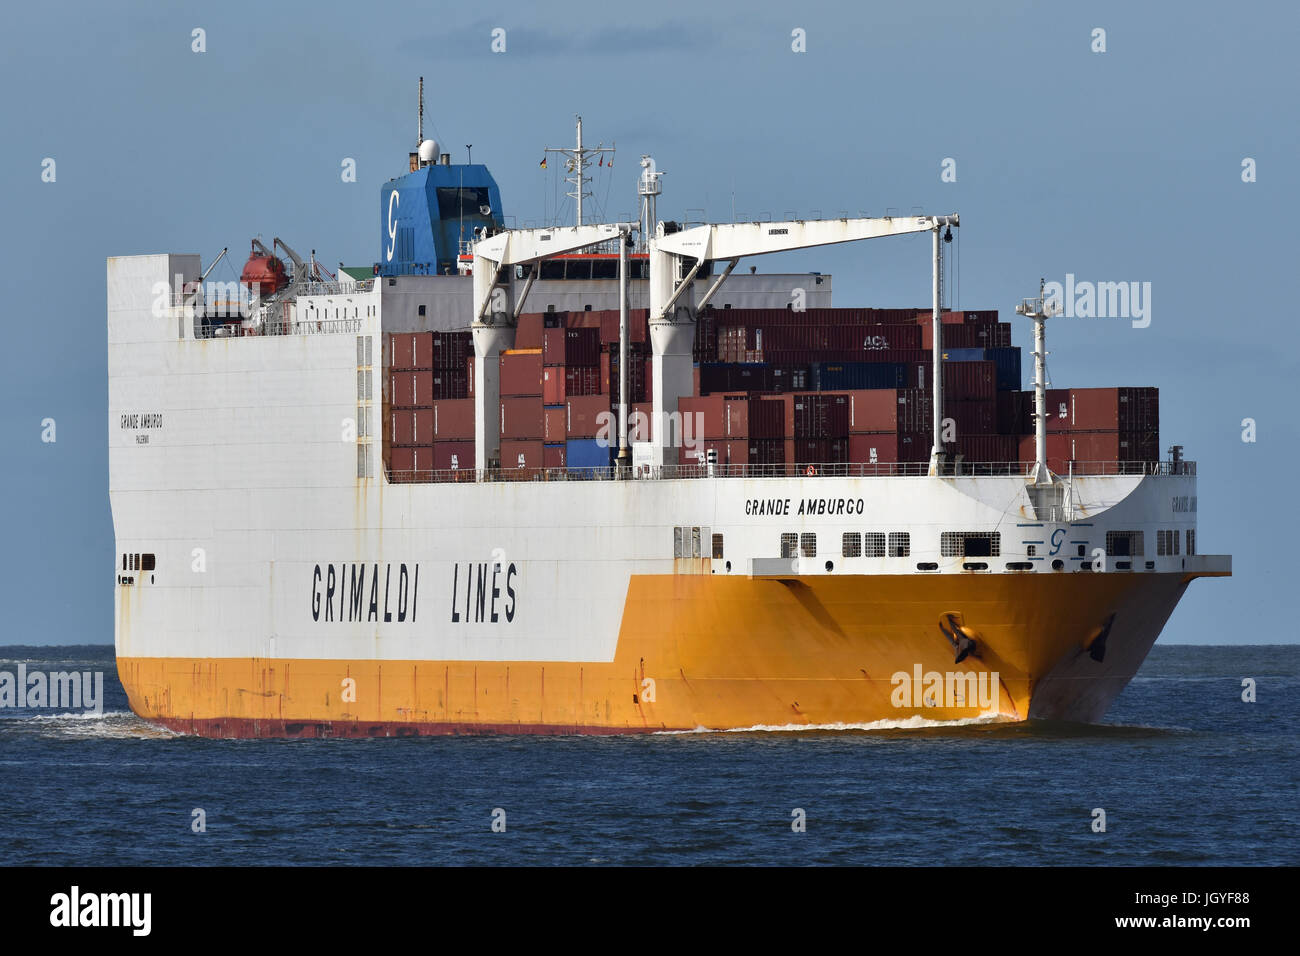 ConRoVessel Grande Amburgo Stock Photo